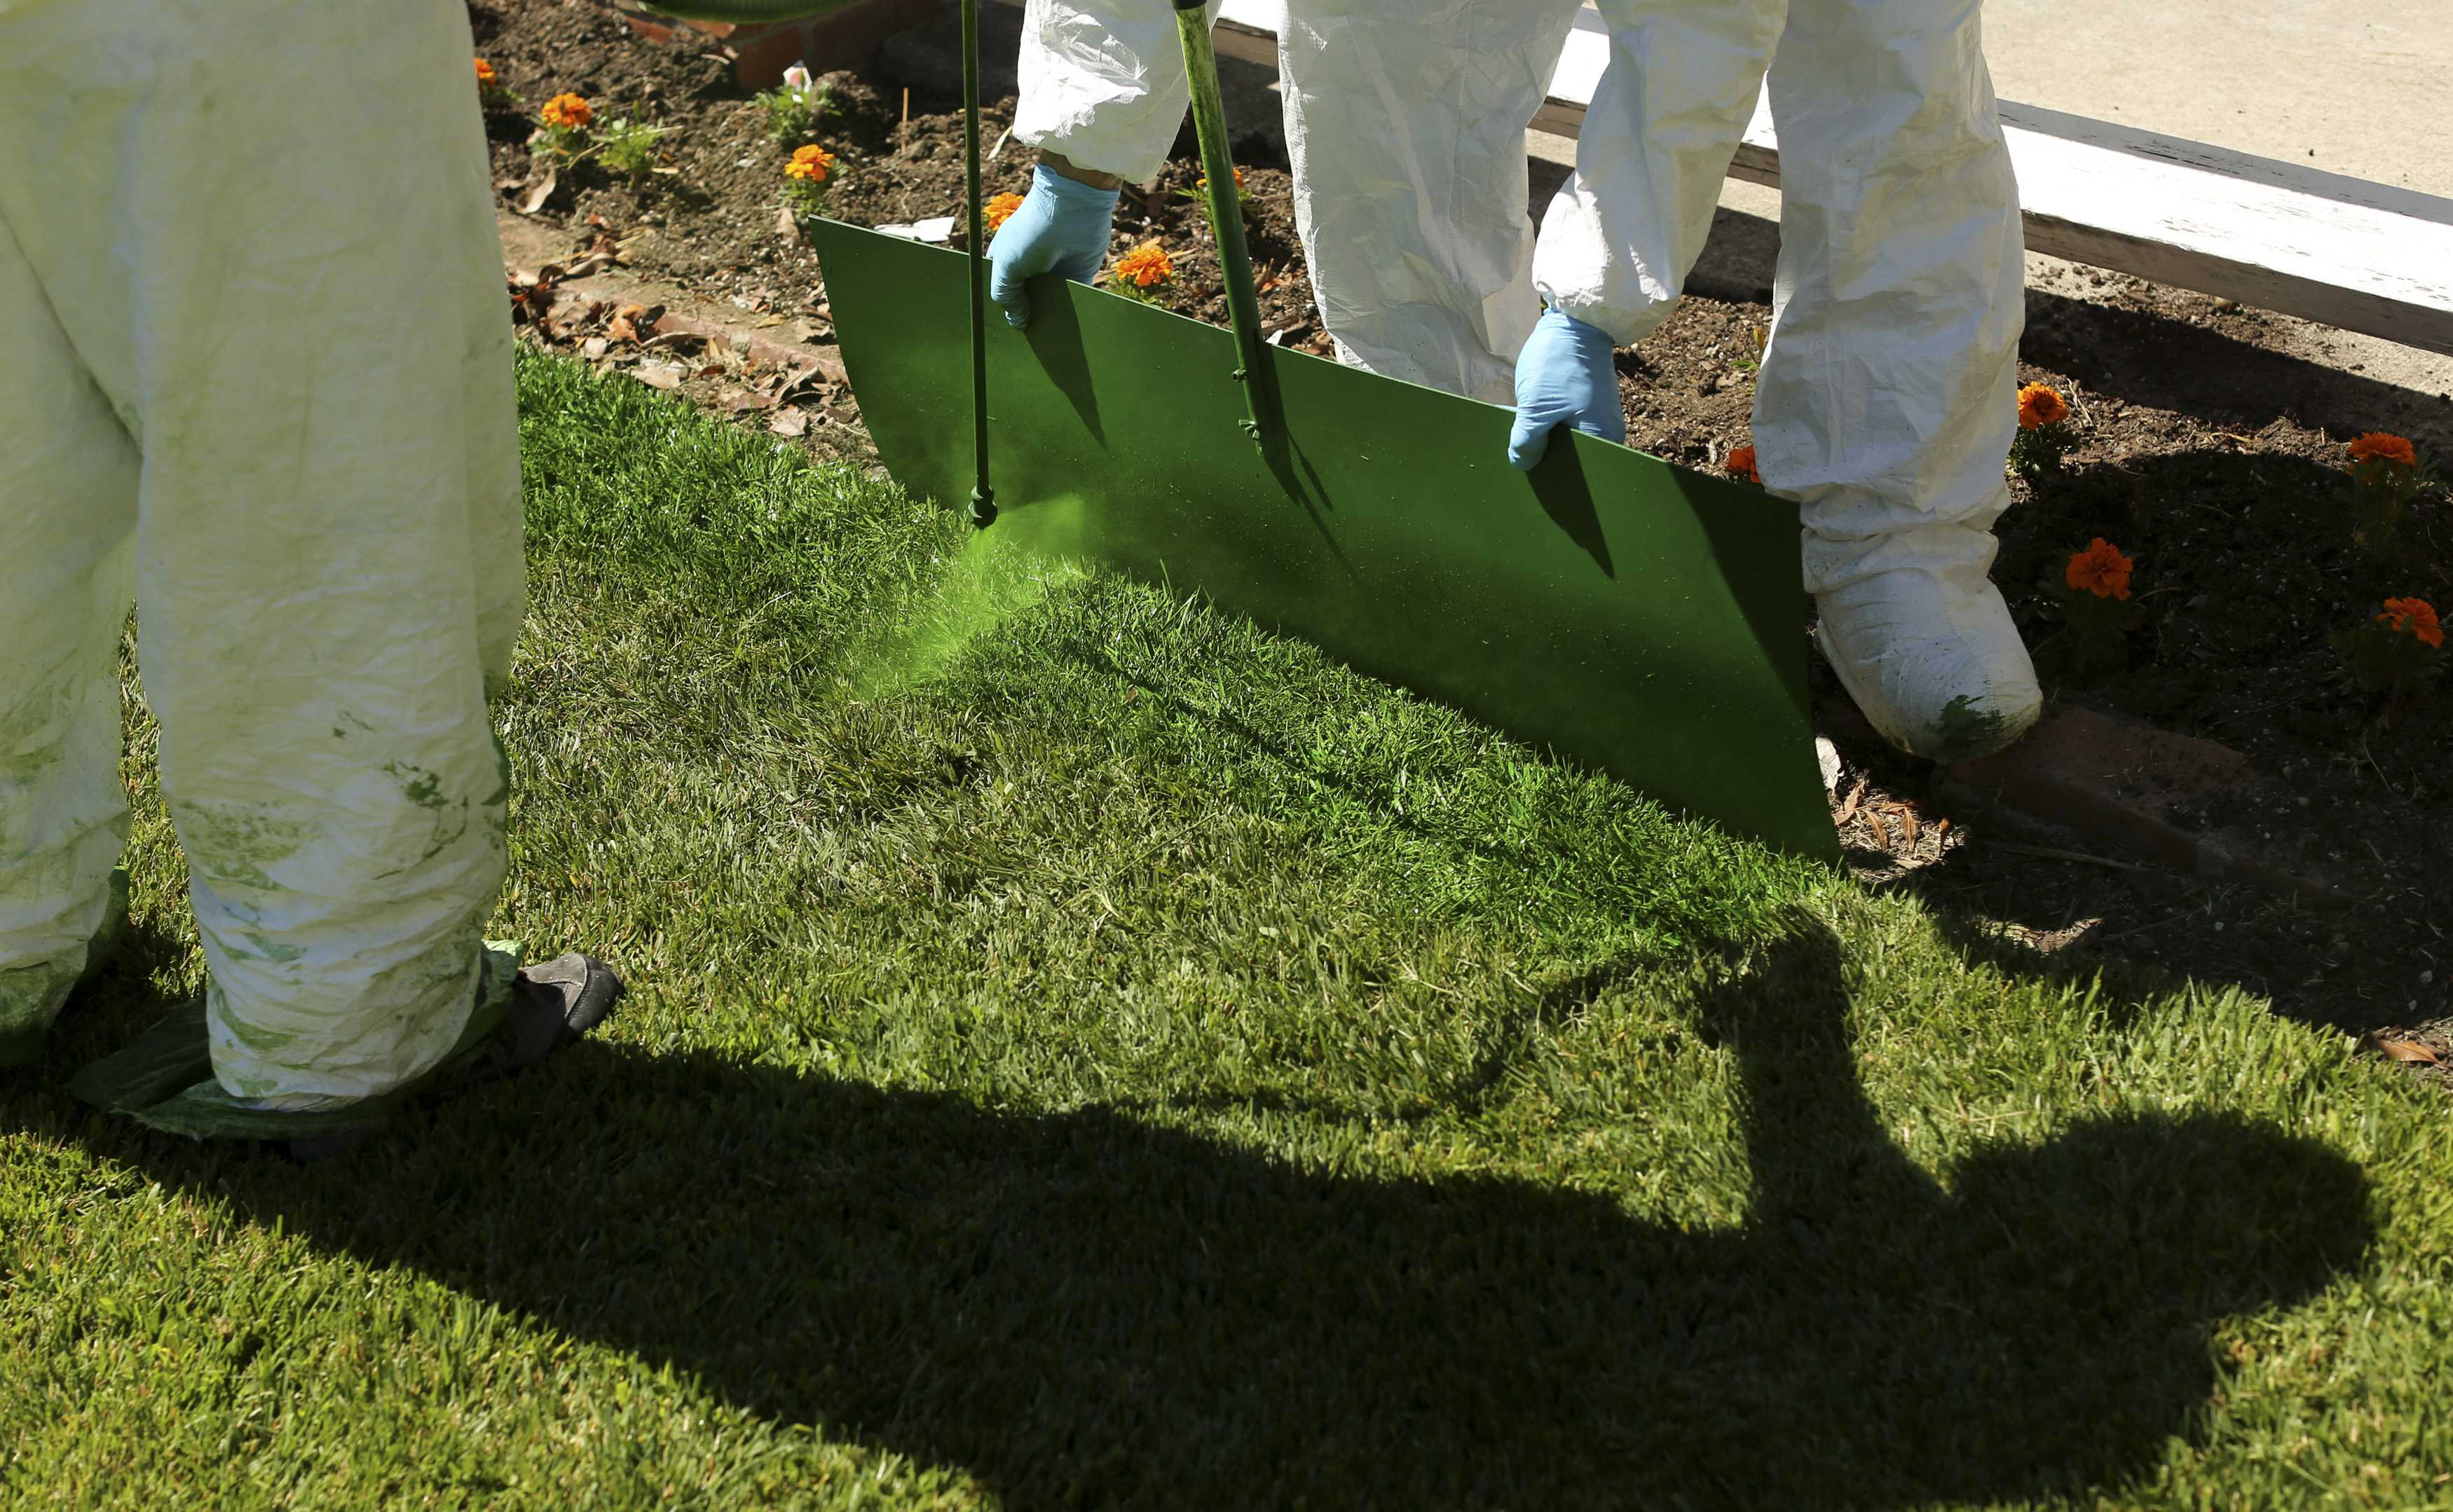 Green Canary workers apply a diluted concentrate of aqueous pigment to the front lawn of a home in San Jose, California July 24, 2014. The company said it uses the coloring application to improve property value, conserve water, and reduce maintenance costs. REUTERS/Robert Galbraith (UNITED STATES - Tags: ENVIRONMENT)